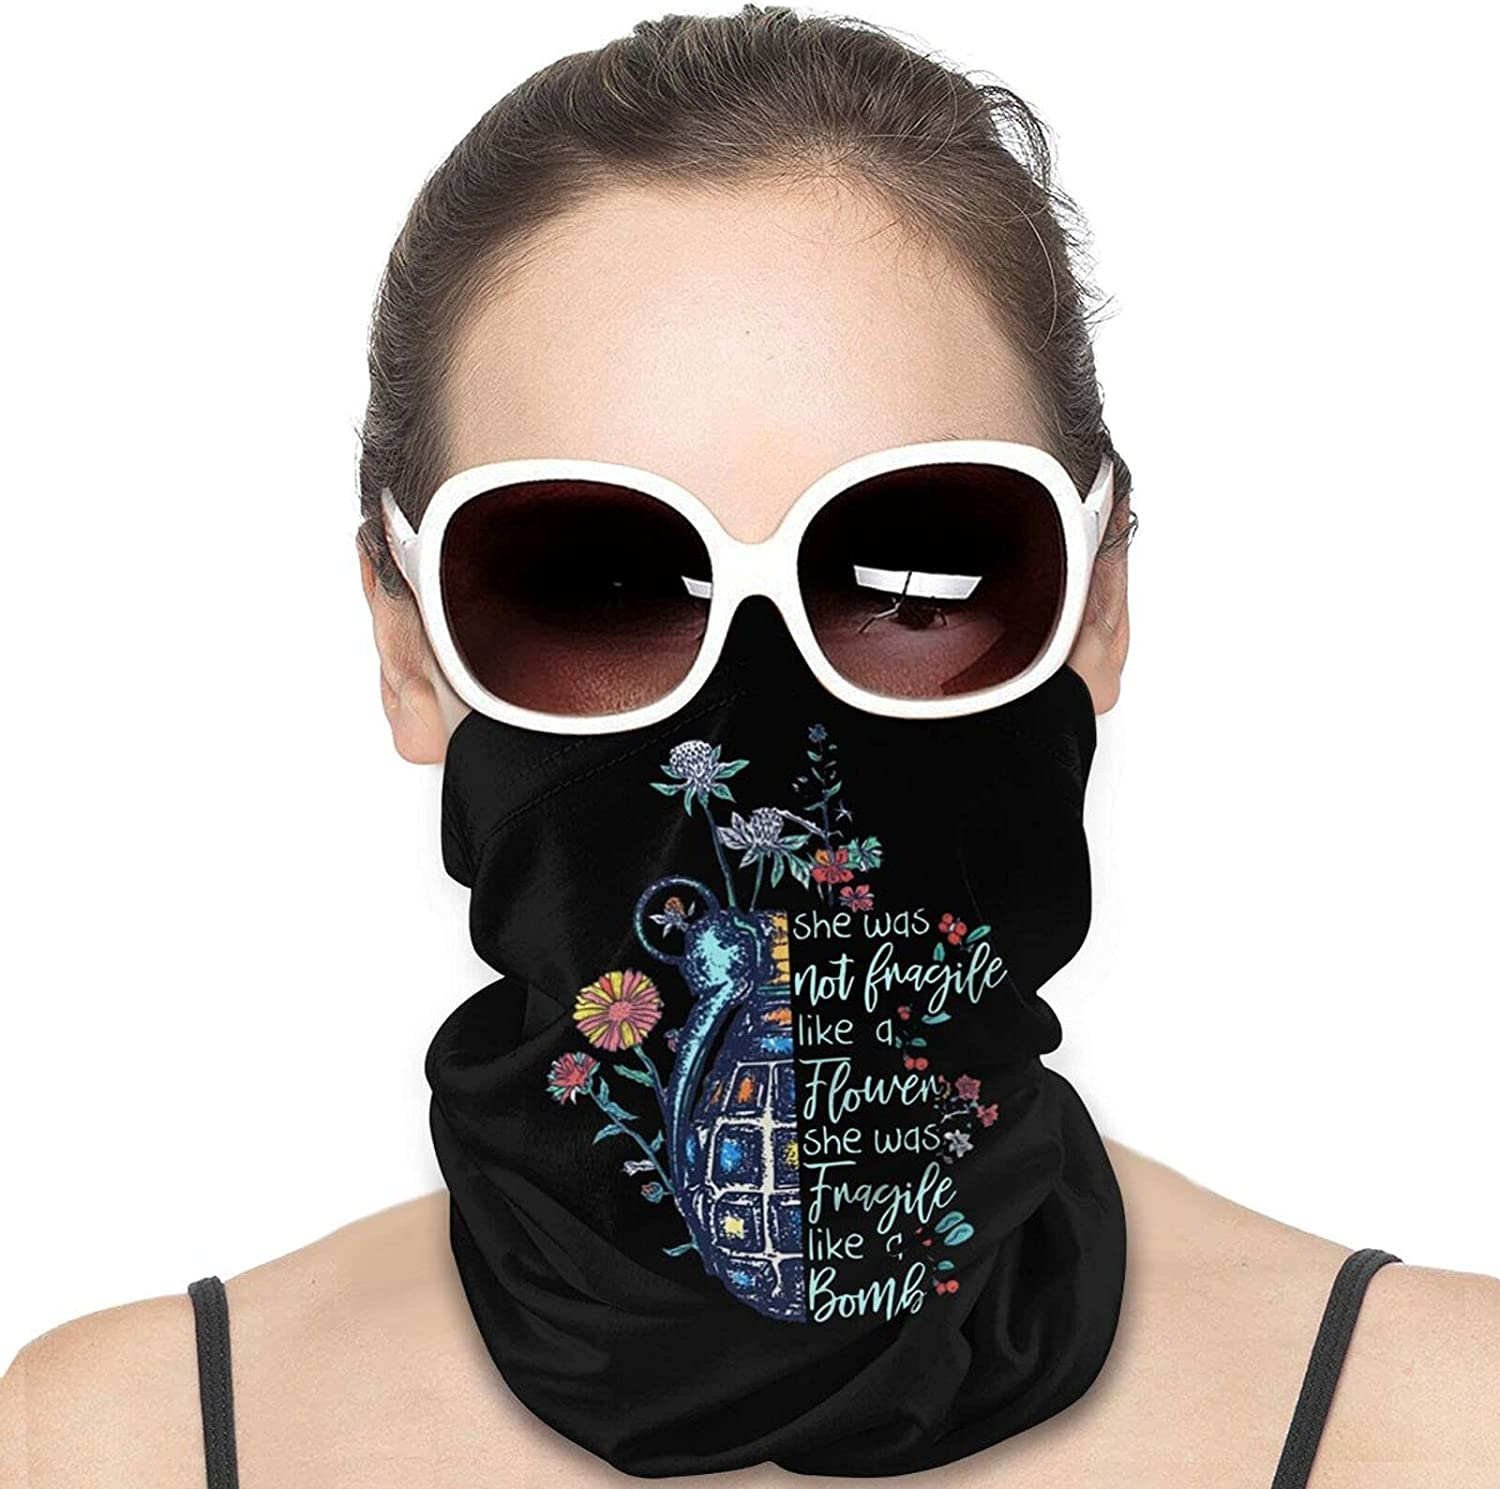 Not Fragile Like a Flower Fragile Like a Bomb Round Neck Gaiter Bandnas Face Cover Uv Protection Prevent bask in Ice Scarf Headbands Perfect for Motorcycle Cycling Running Festival Raves Outdoors